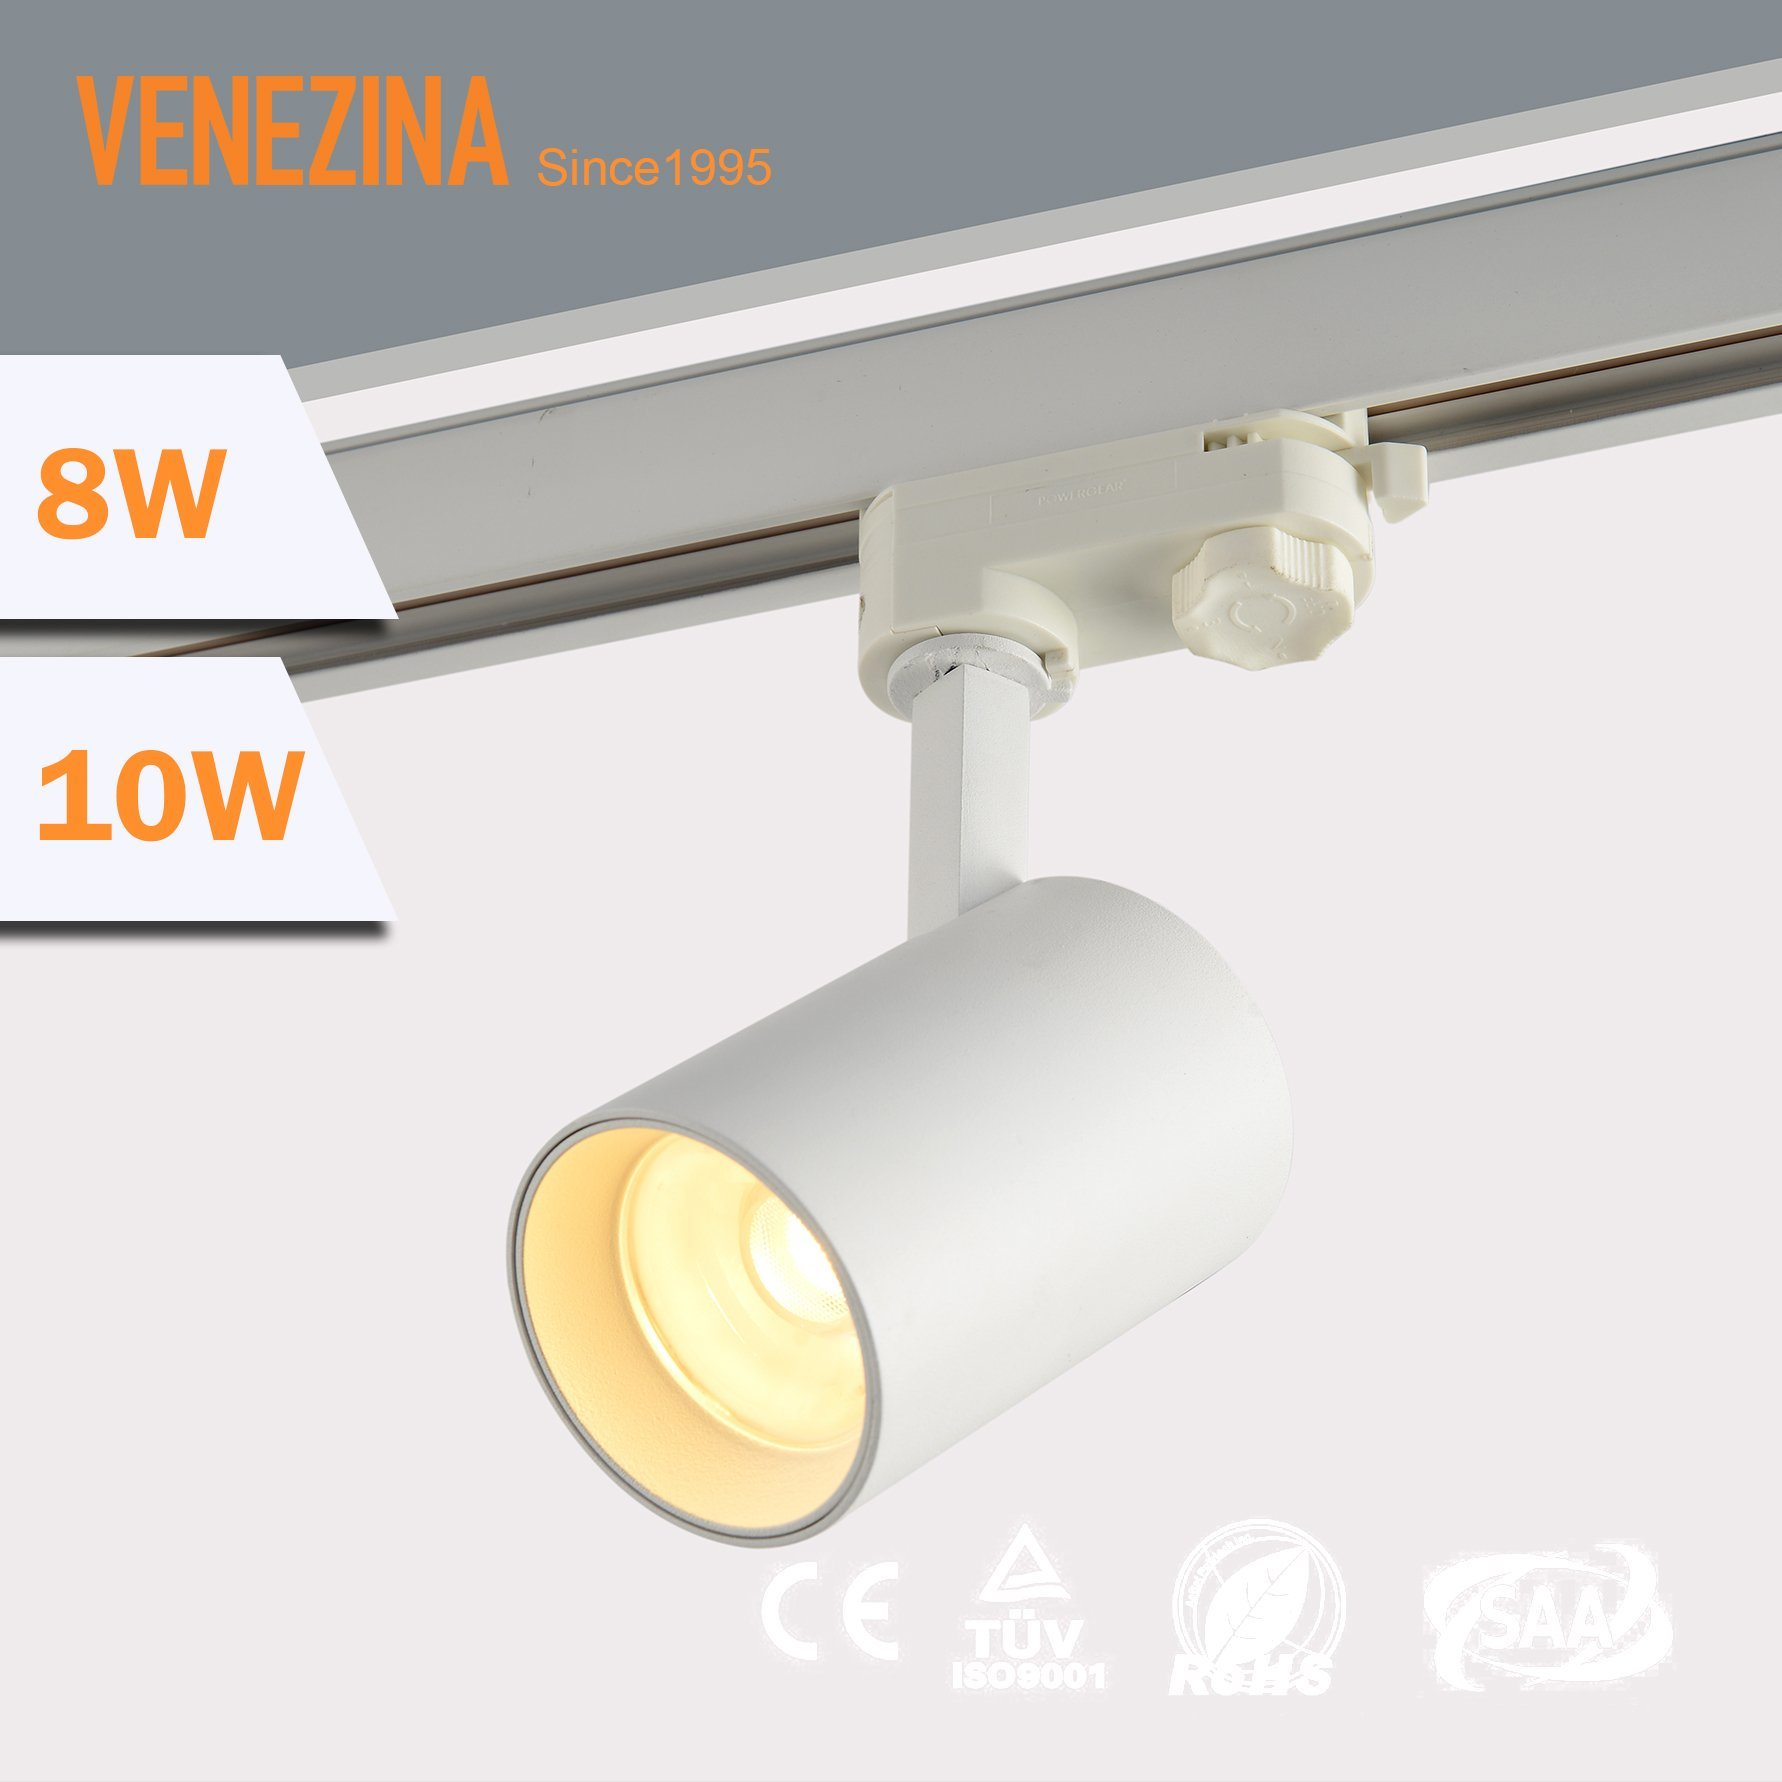 China Commercial Interior Lighting Cree High Cri 10w 15w Cob Led Track Light For Gallary Museum